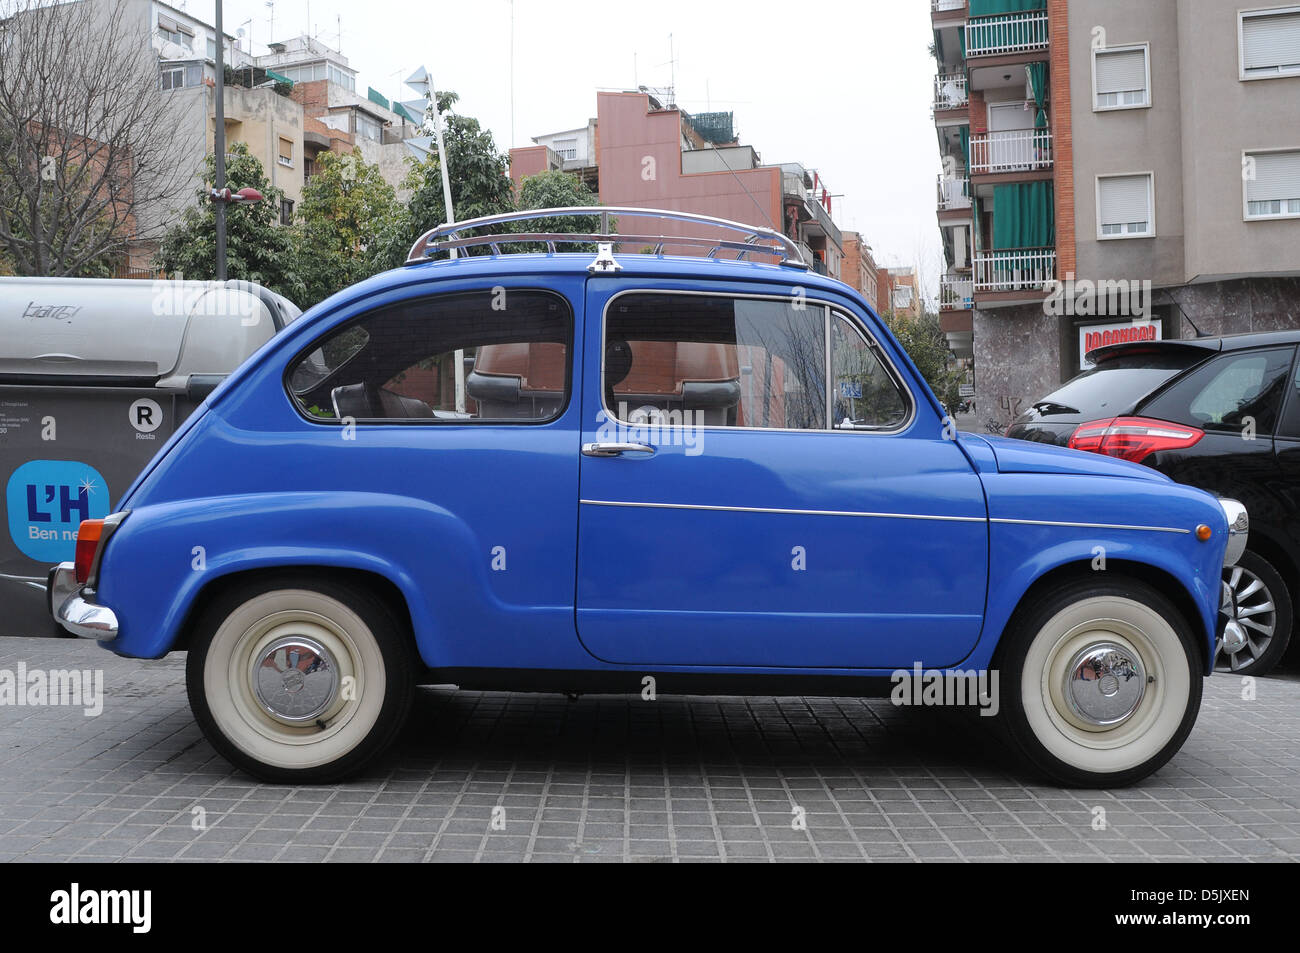 b087d4243a blue car Seat 600 -( fiat) - manufactured from 1957 till 1973 Typical  Spanish